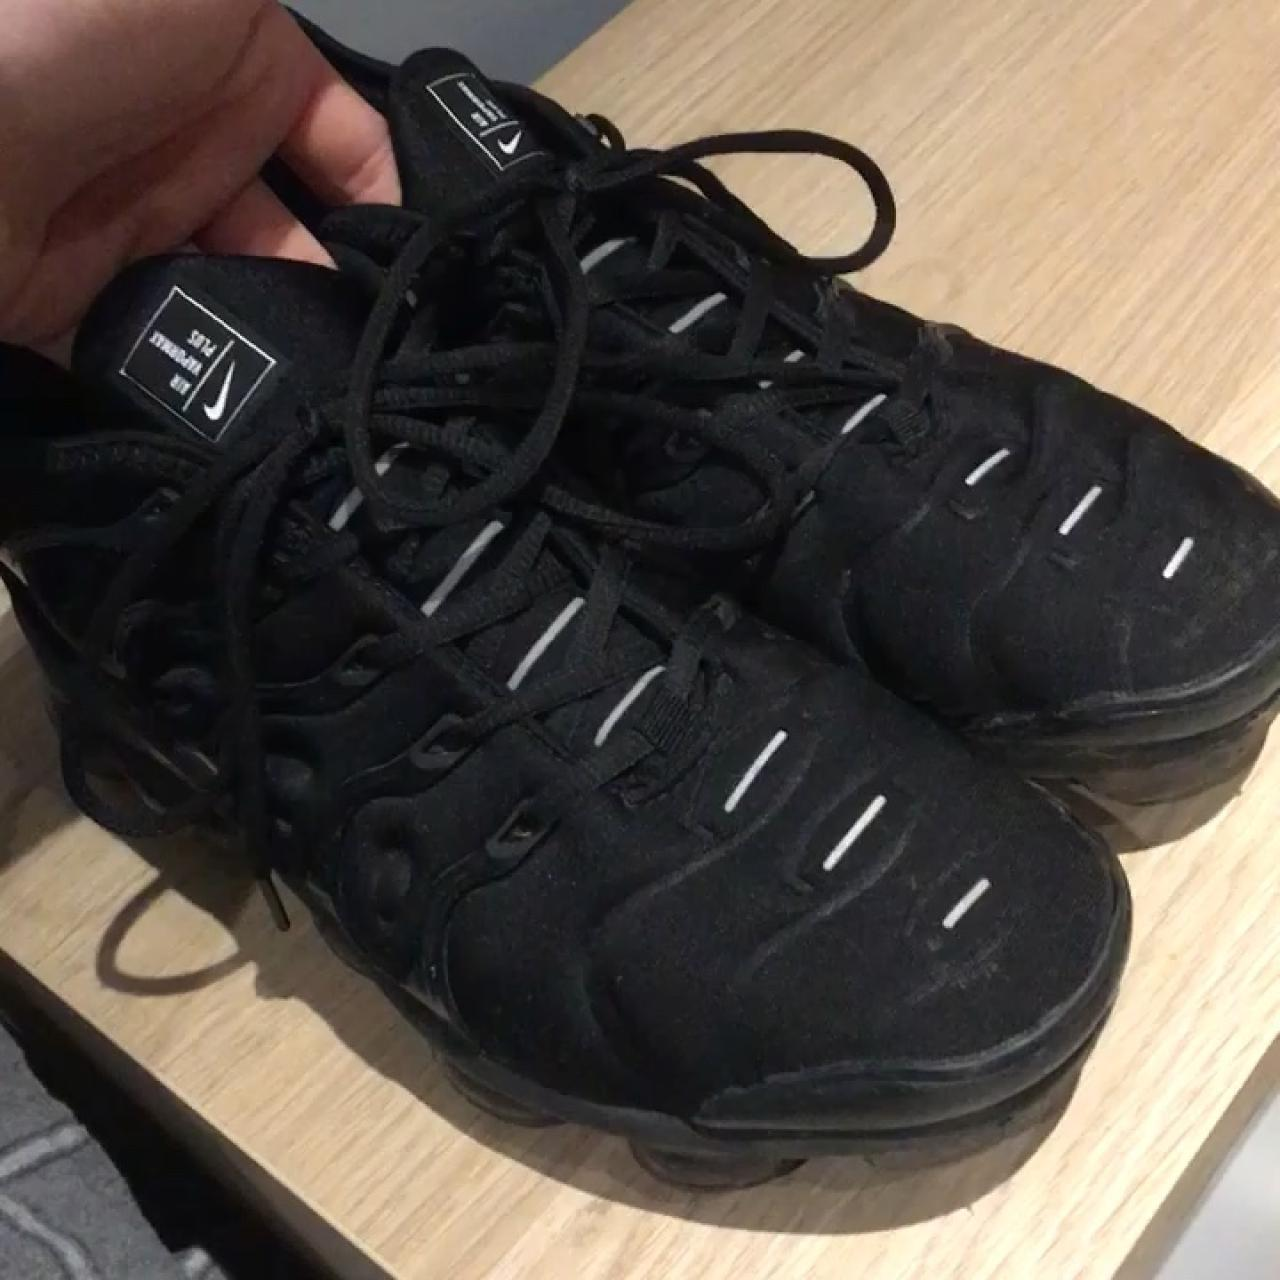 446fe30c444 Nike VM vapourmax tn shoes. uk11 and I will clean these up a - Depop